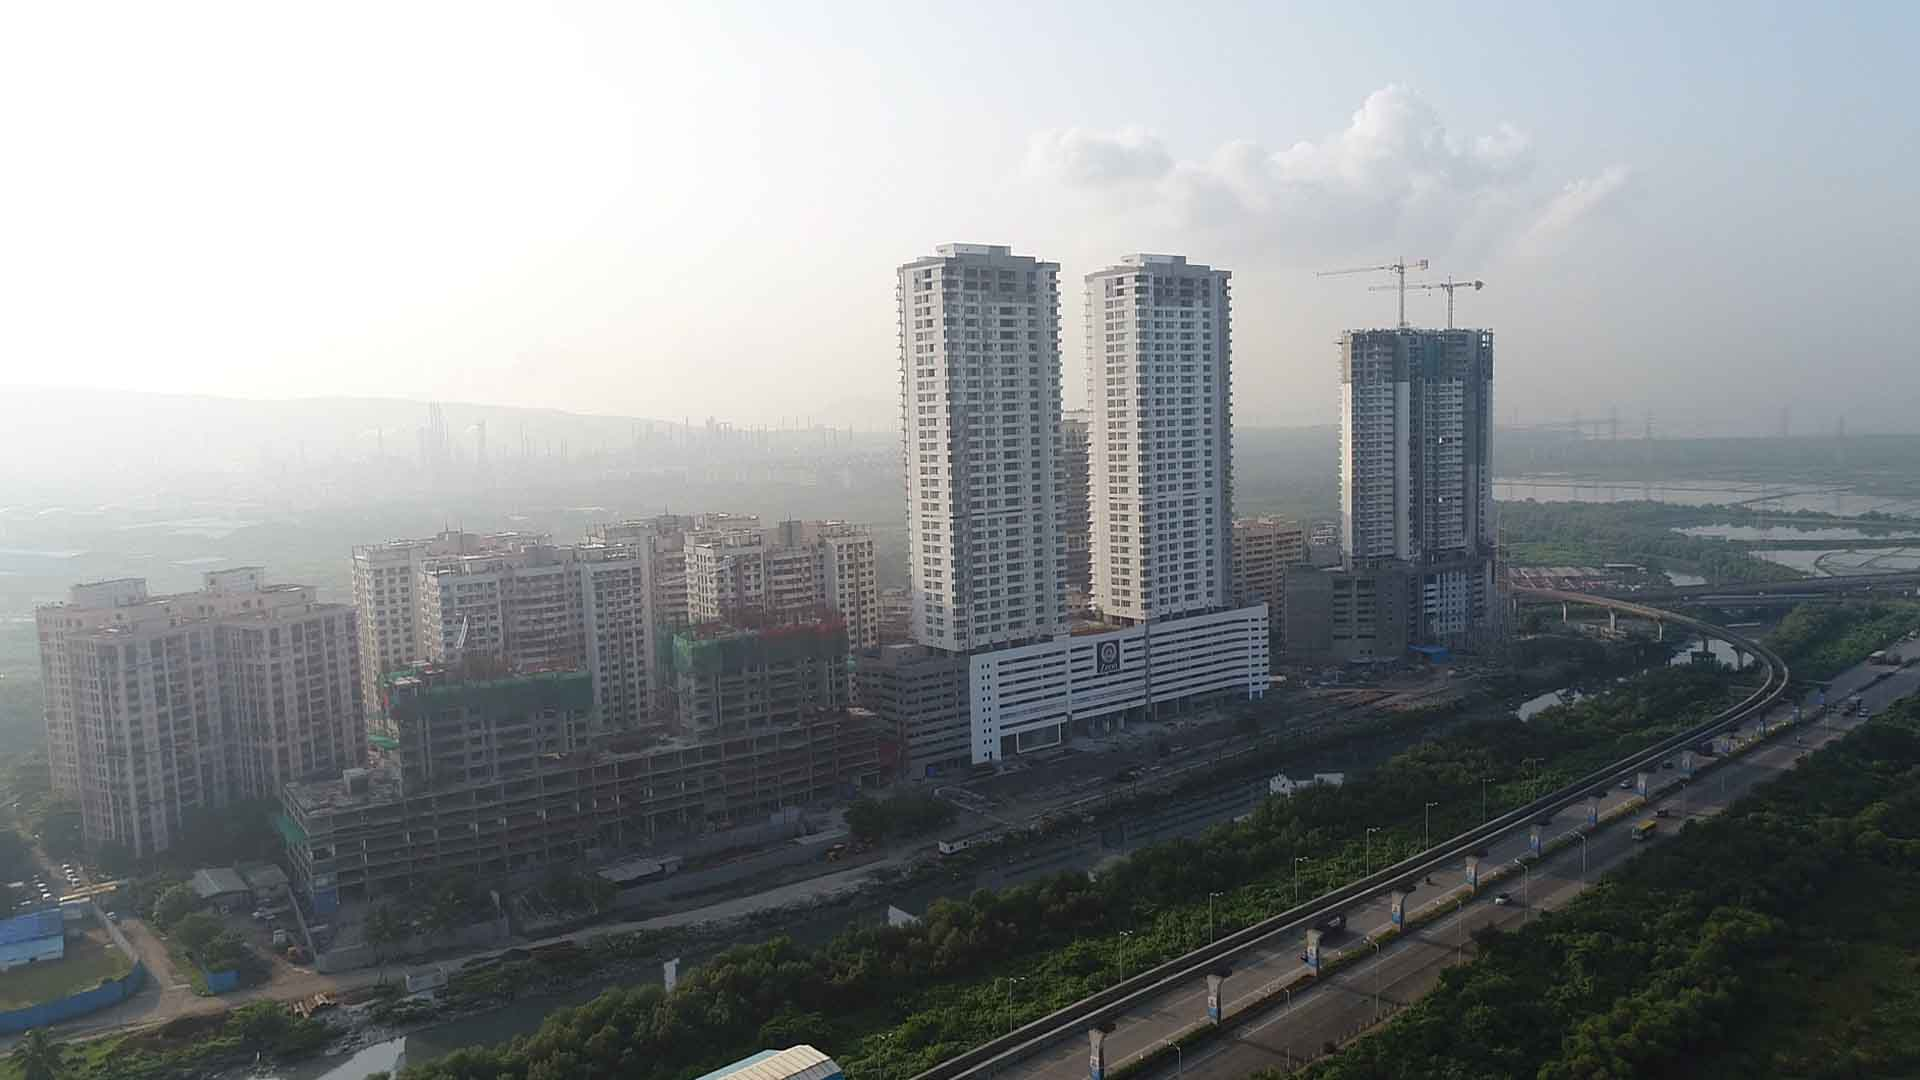 A Mumbai Suburbs' swift transformation from industrial to a residential zone: Wadala